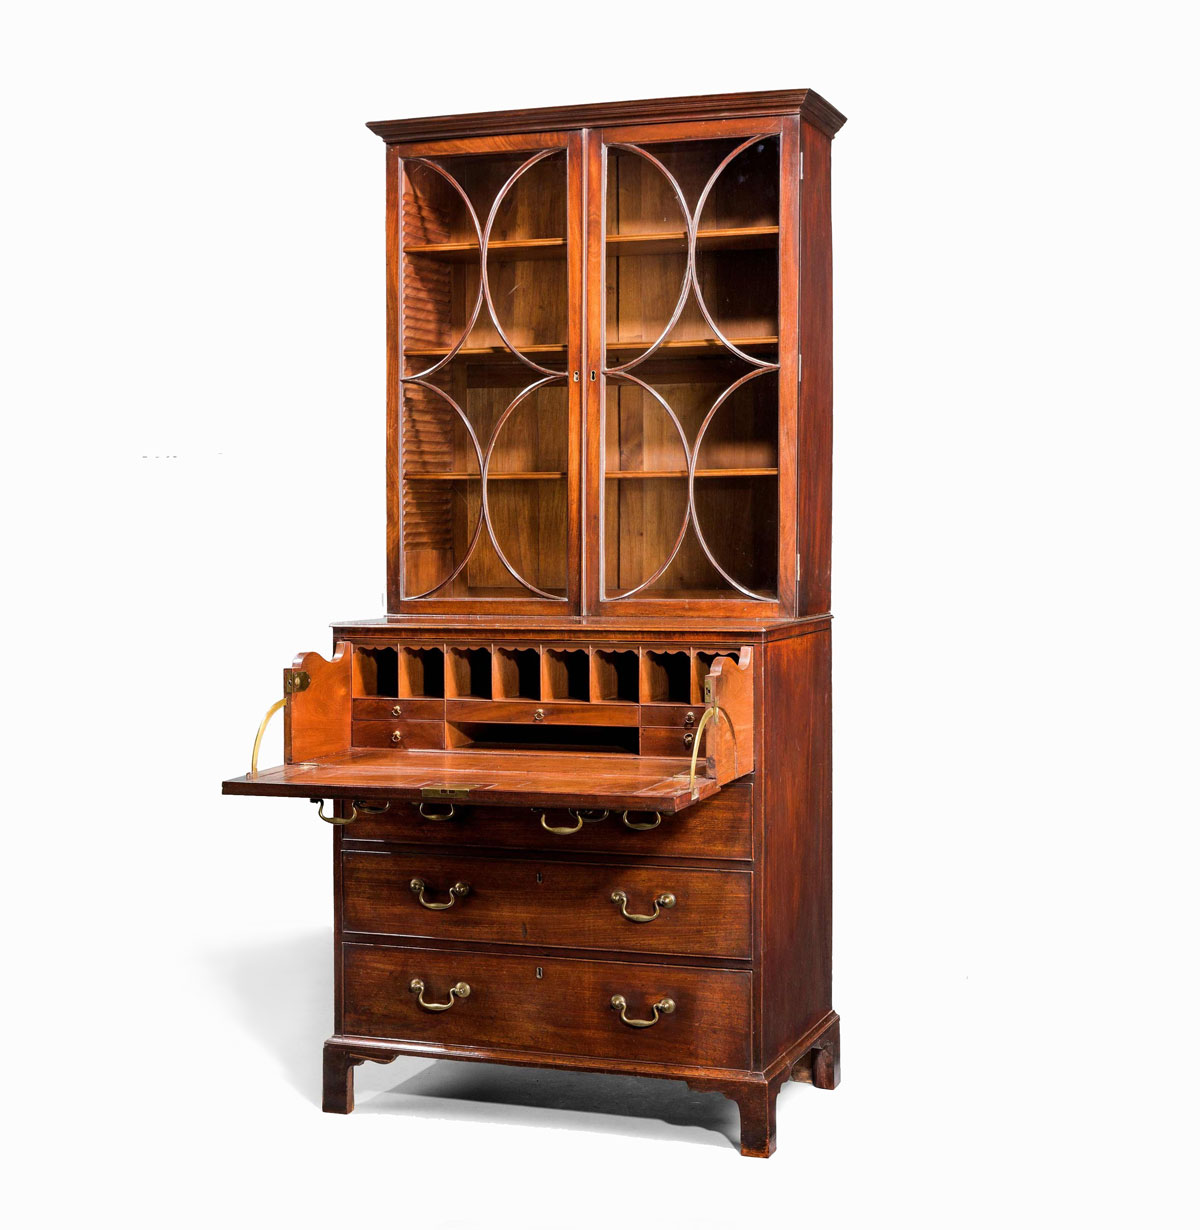 Buy Antique furnitures in Antibes